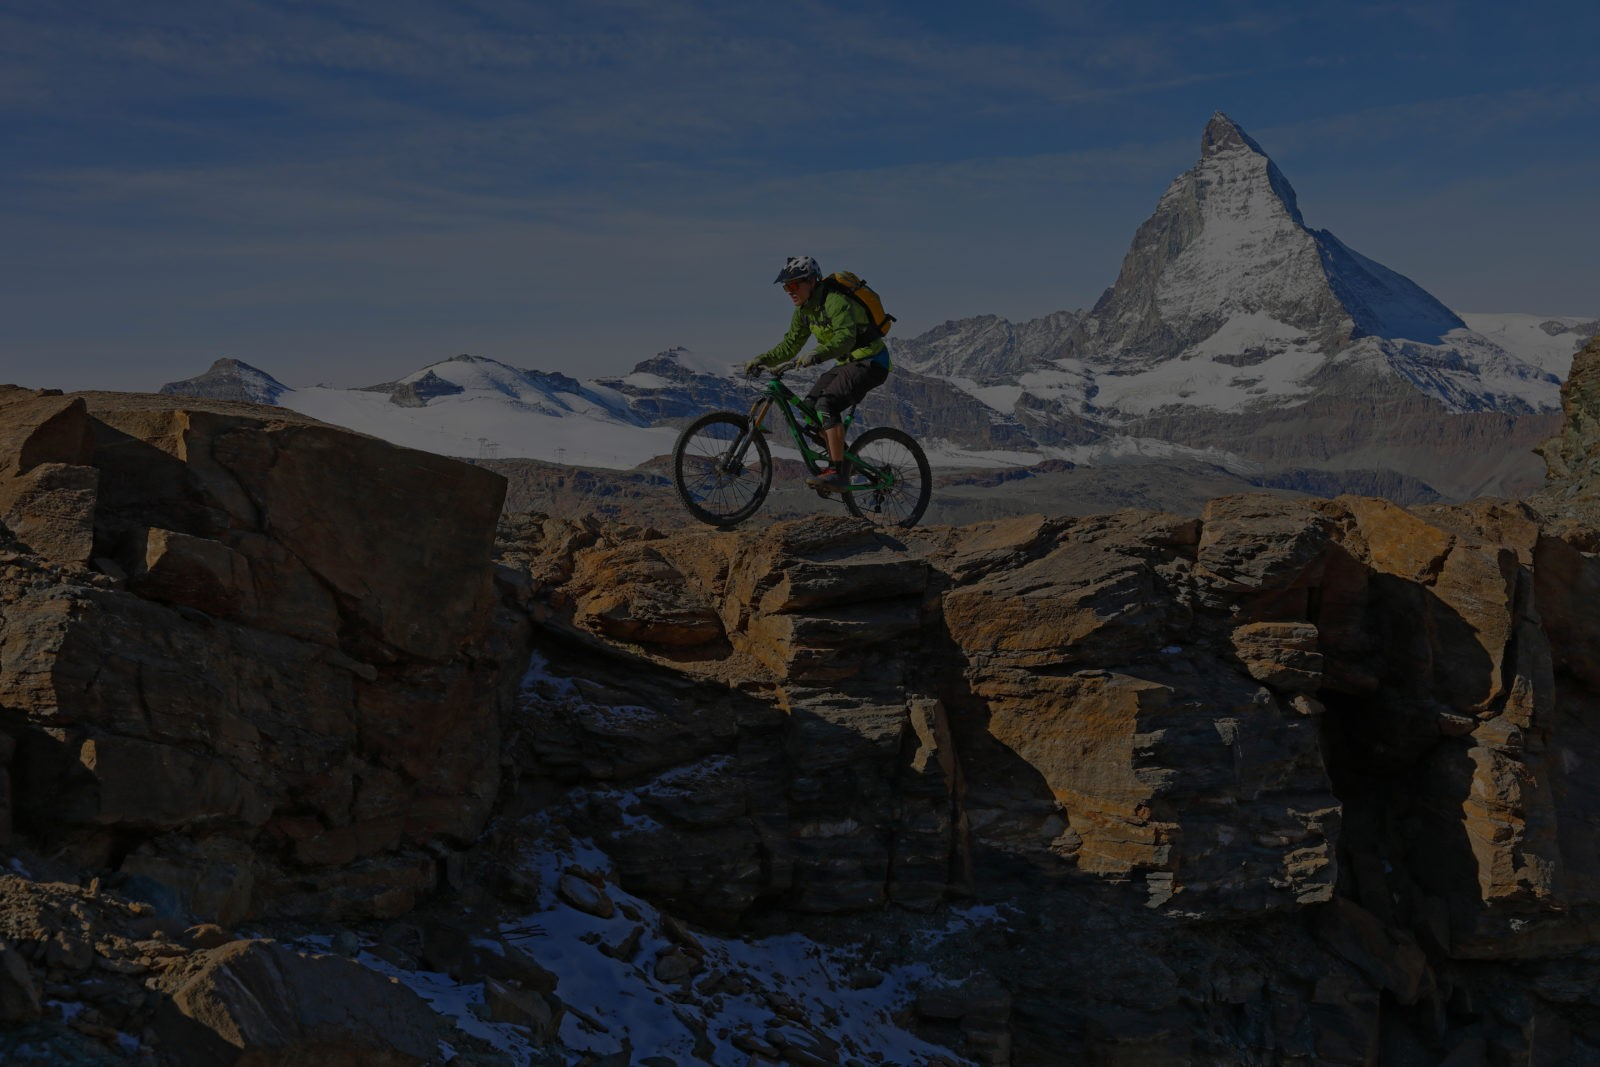 Young man mountain bikes along rock edge below the Matterhorn mountain